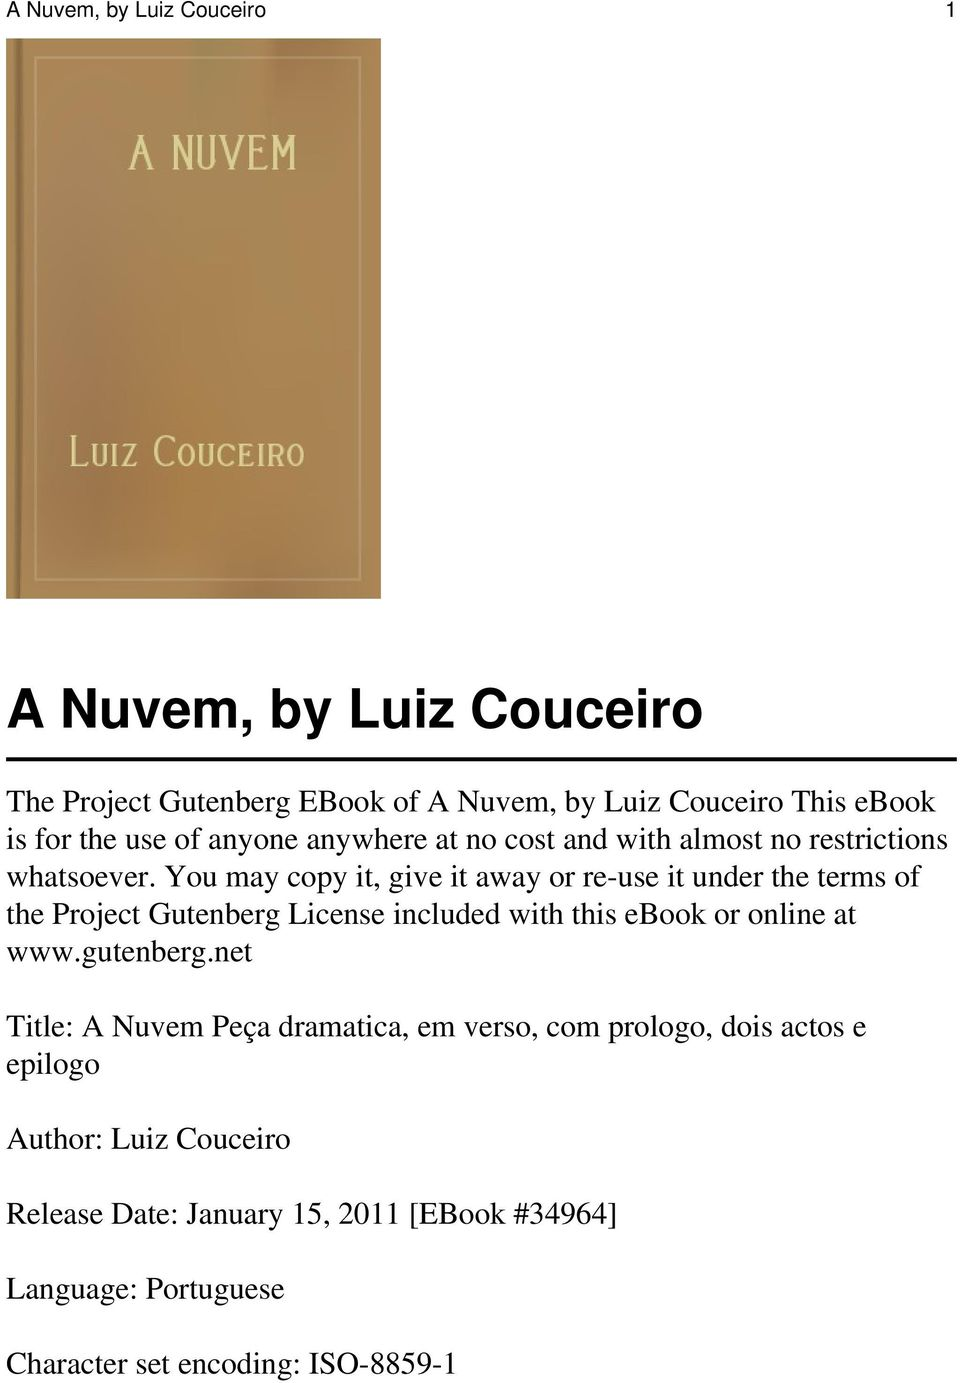 You may copy it, give it away or re-use it under the terms of the Project Gutenberg License included with this ebook or online at www.